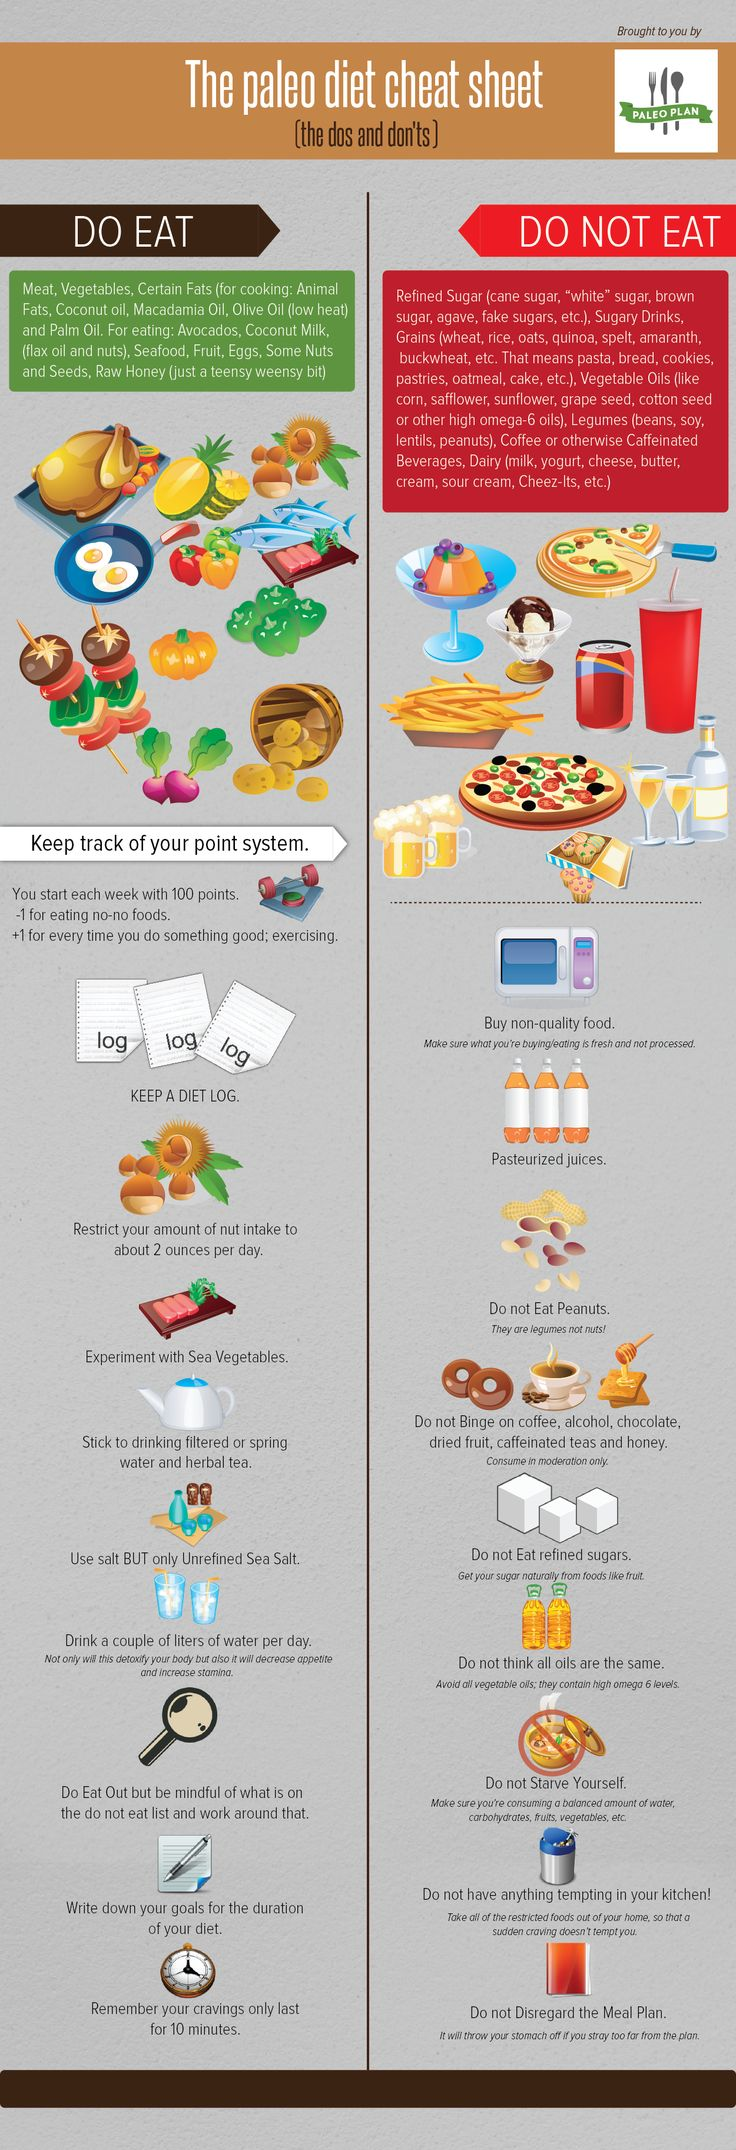 Tips for weight loss rapidly picture 8